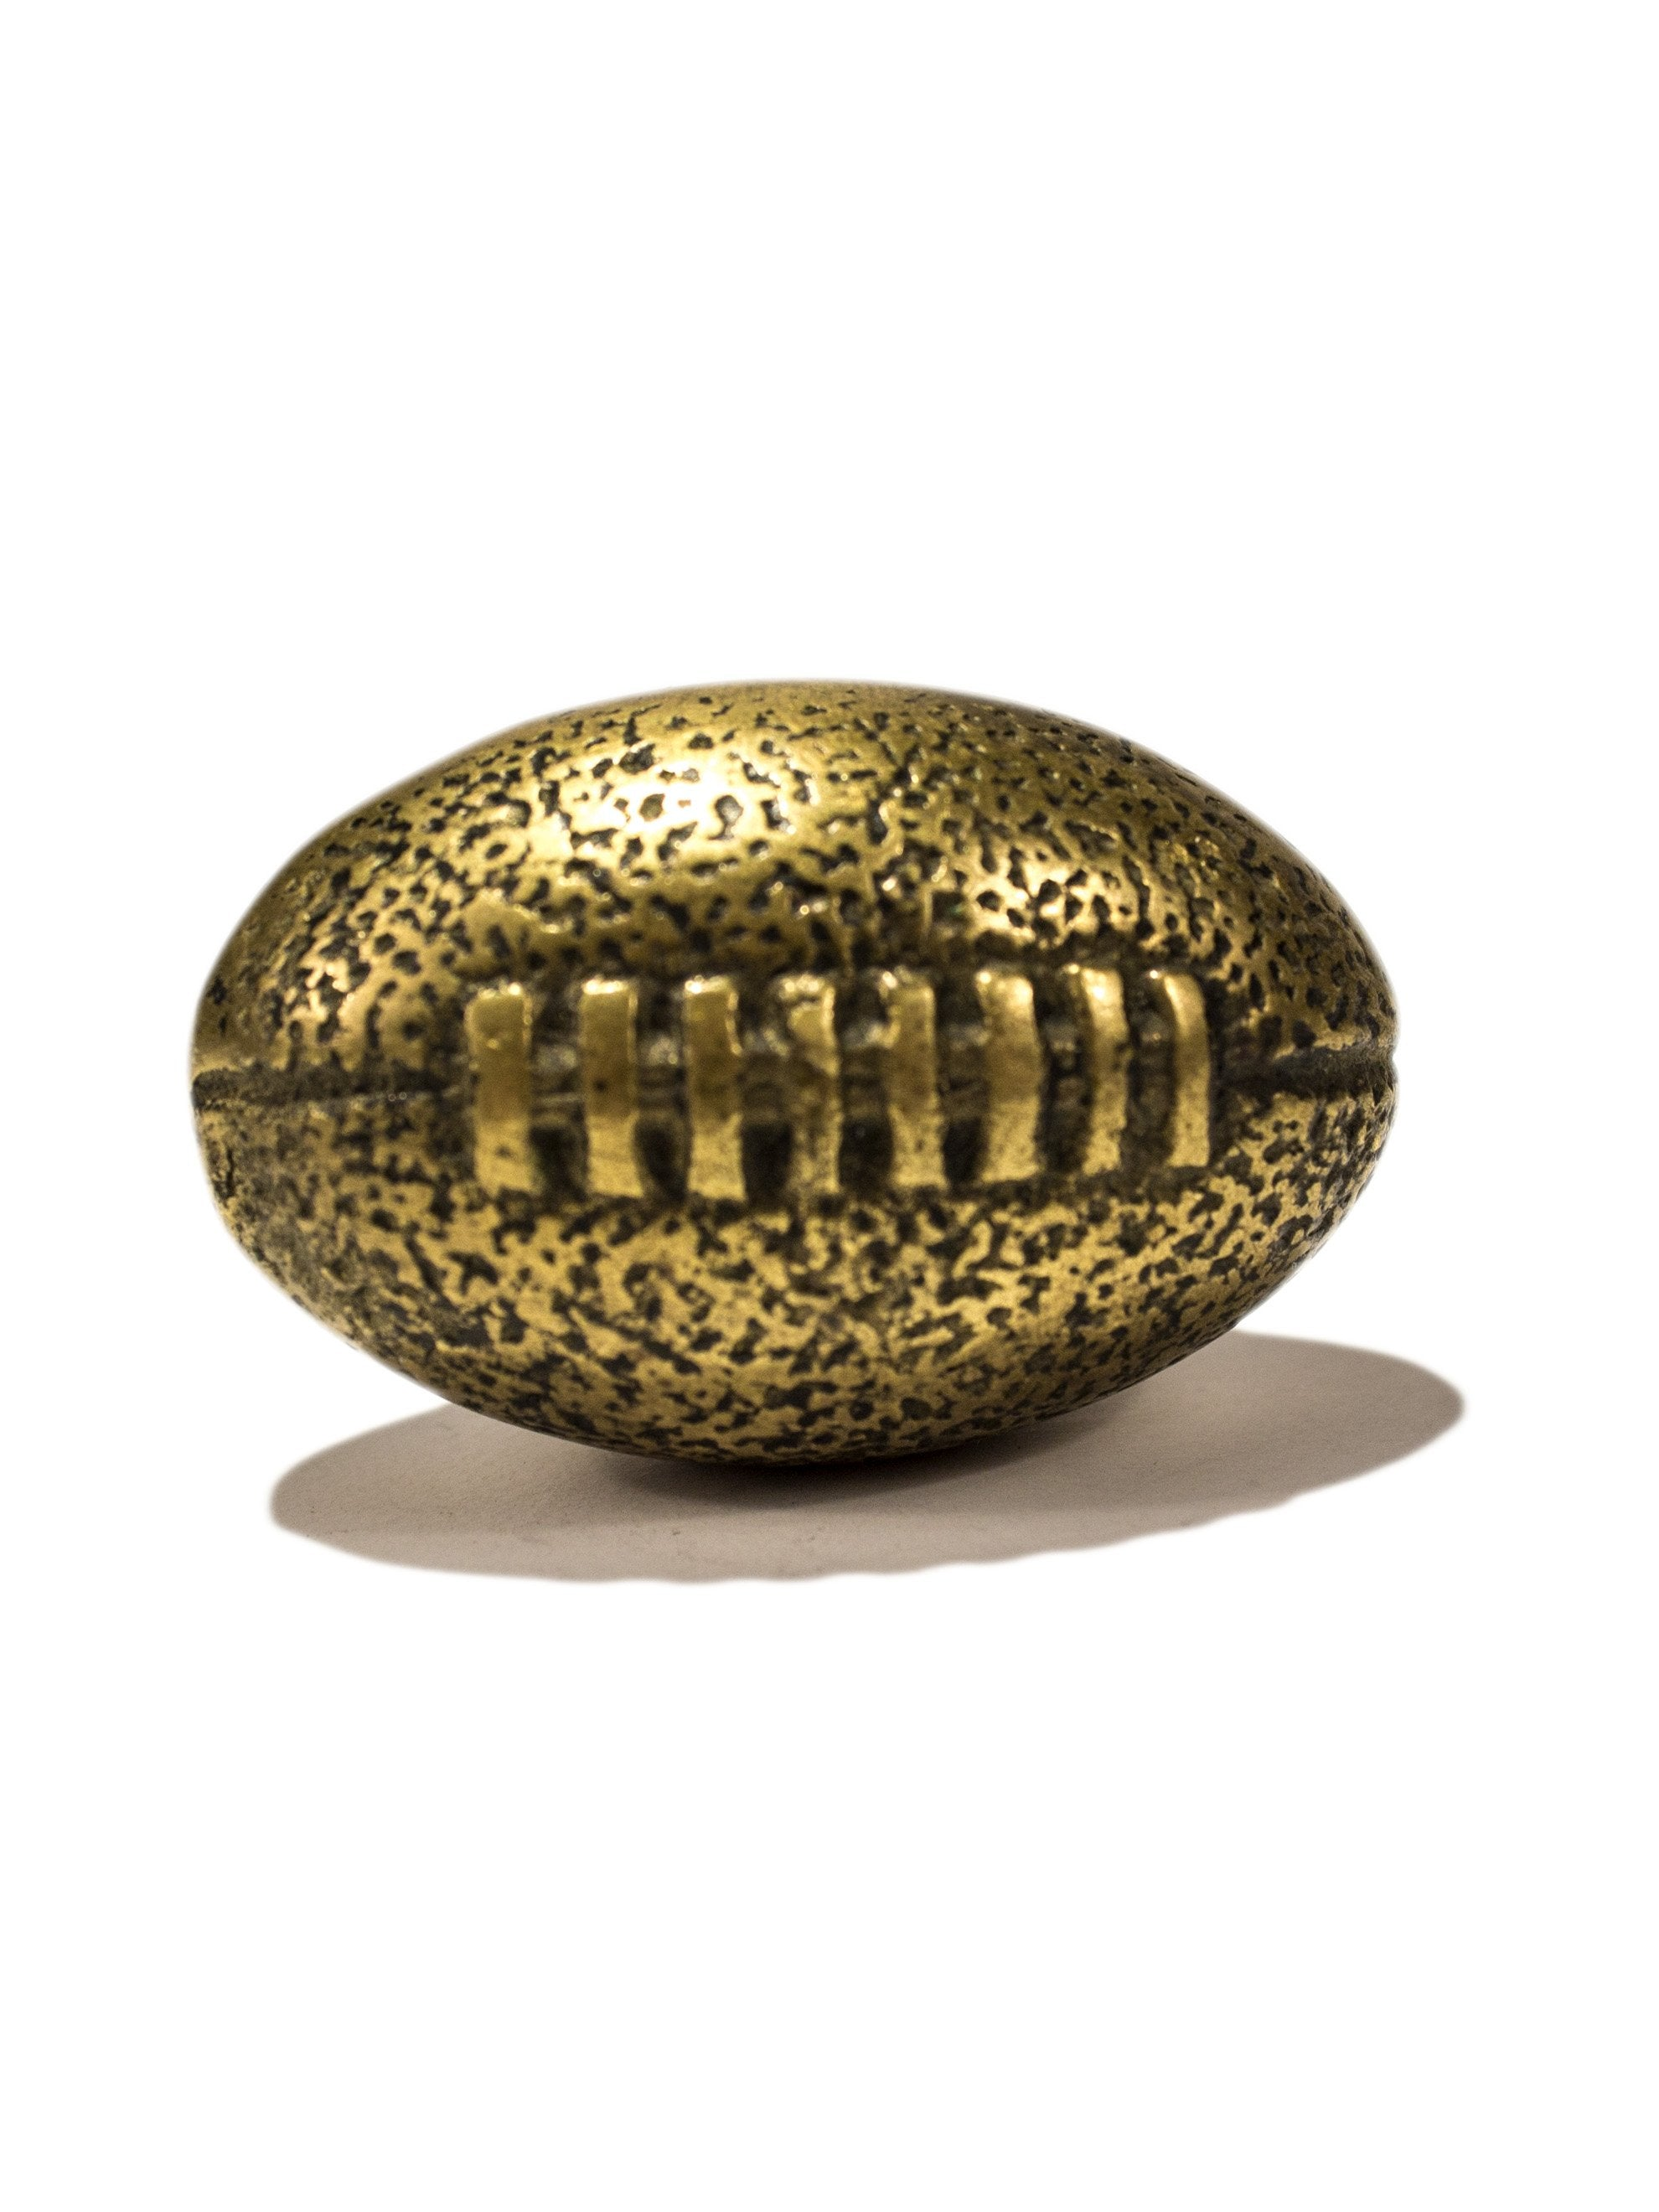 1950's Solid Brass Football Desktop Weight